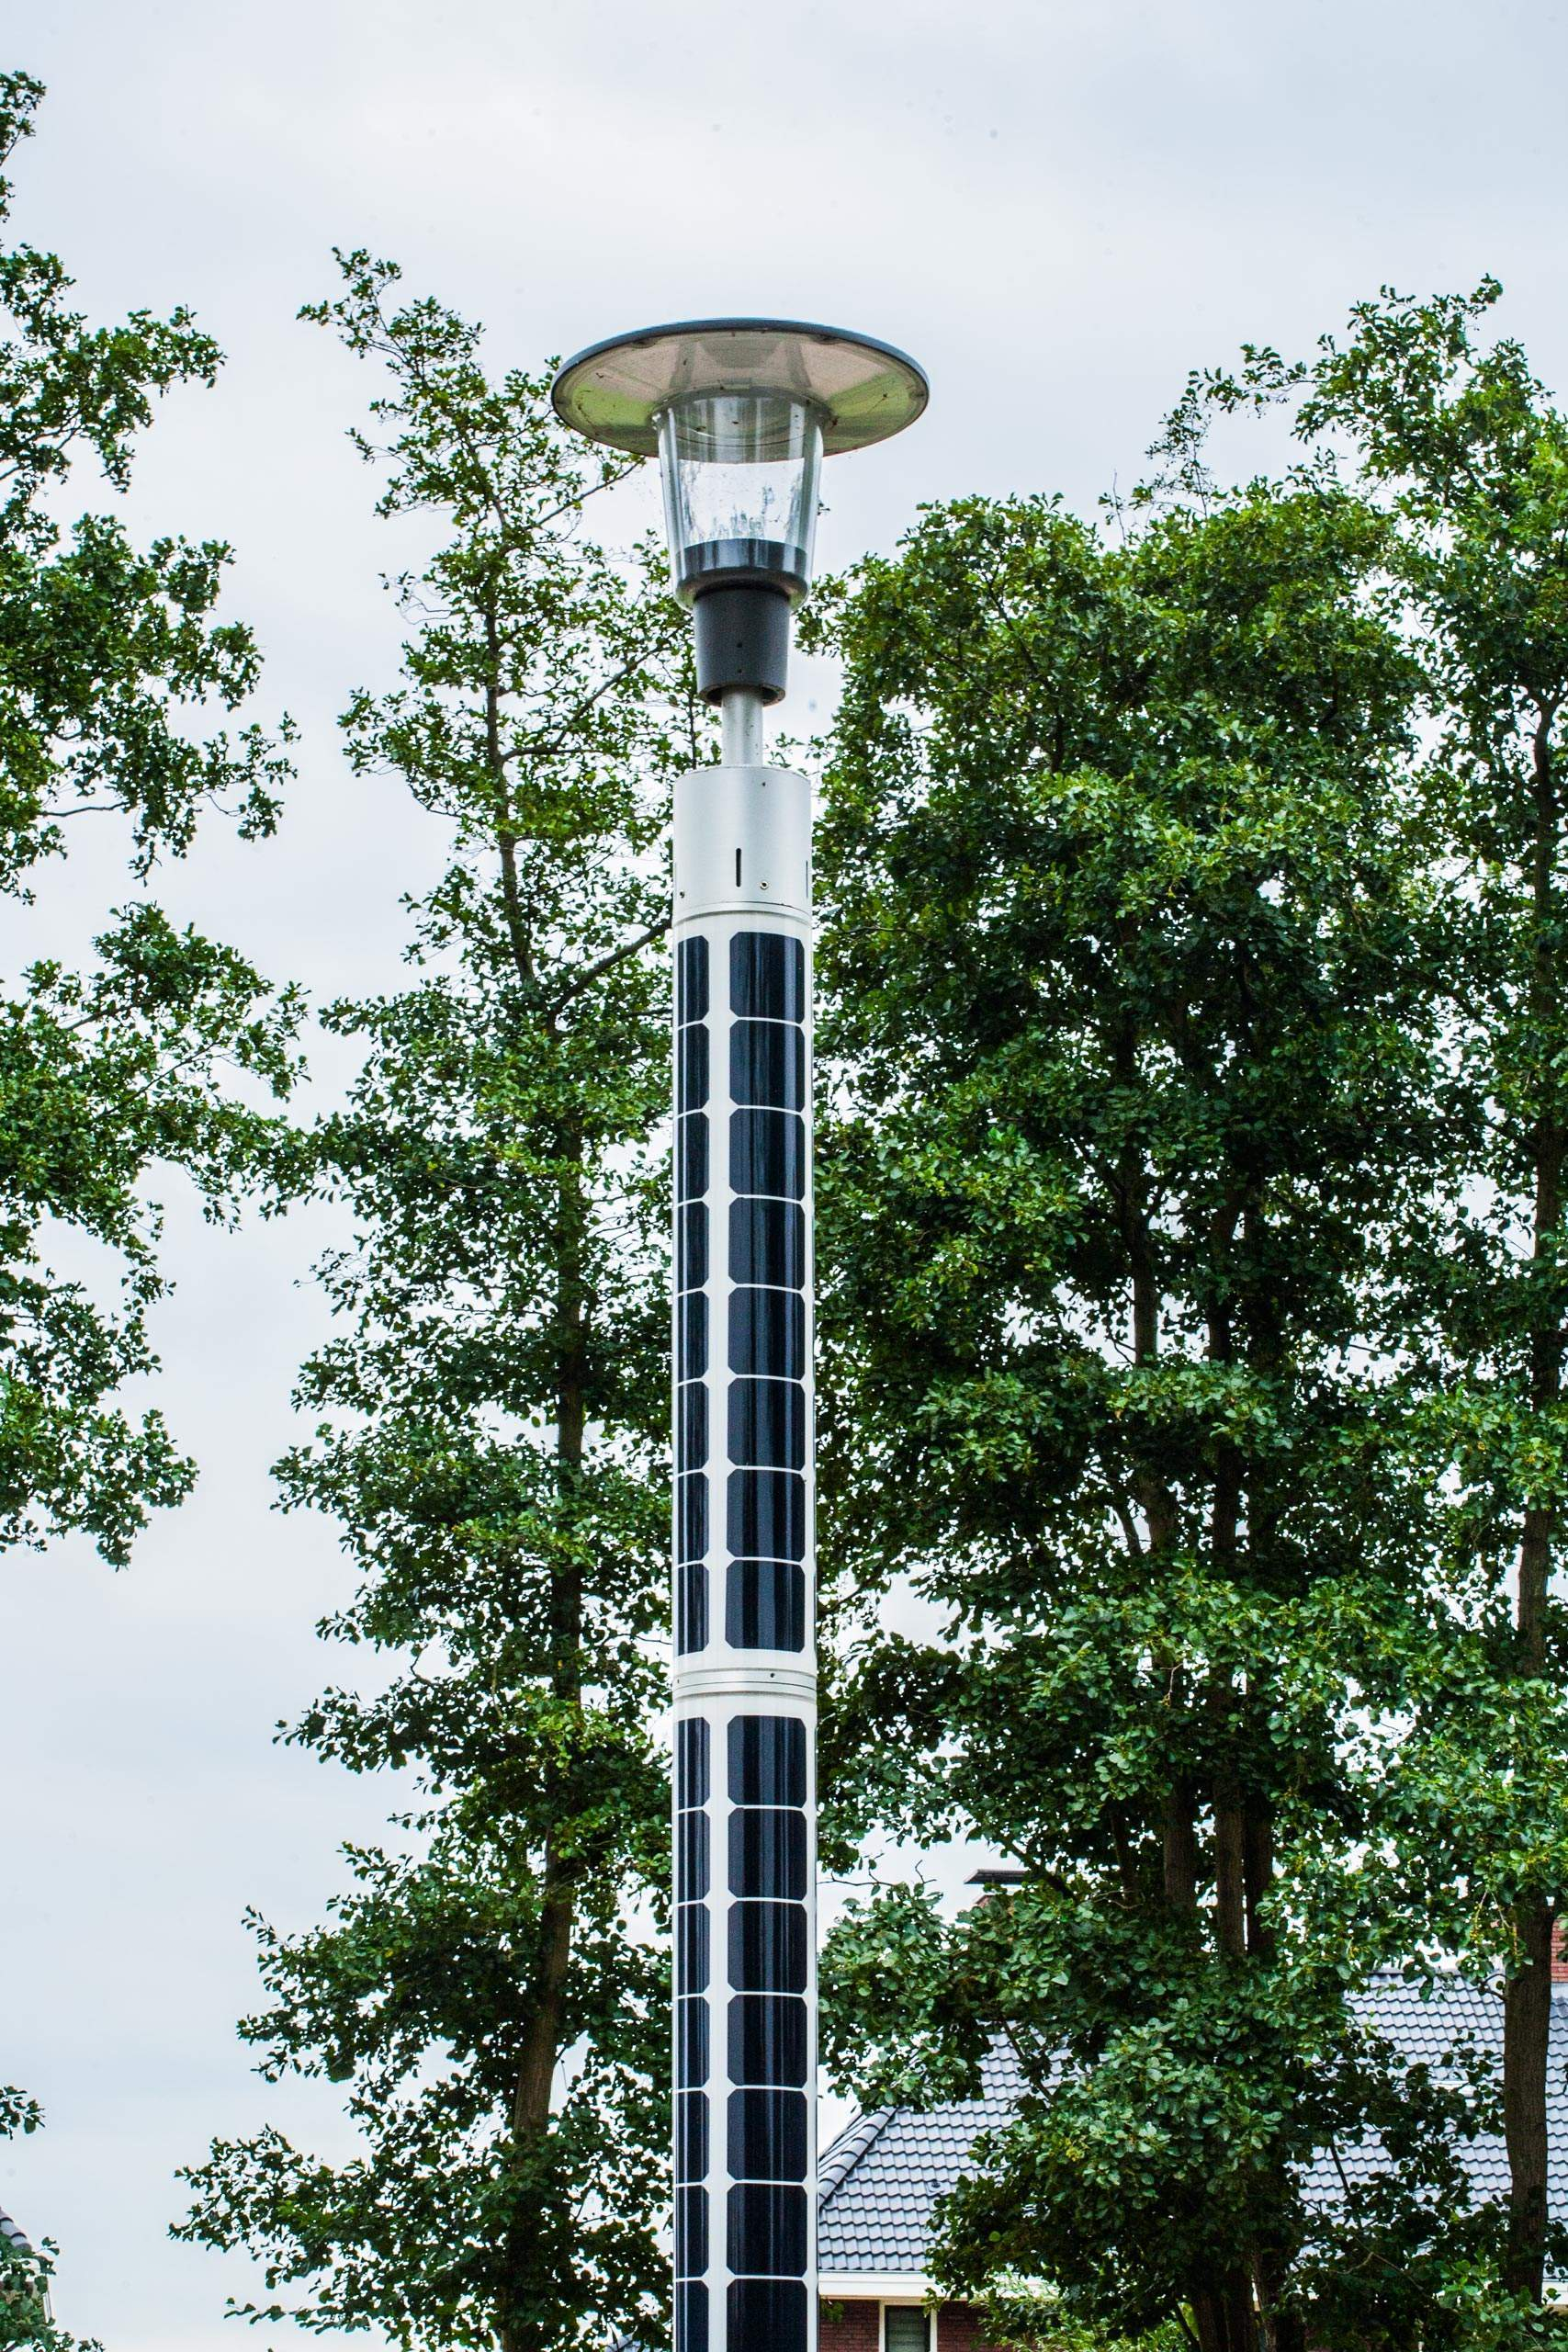 Soluxio solar landscape lighting with Philips LED light